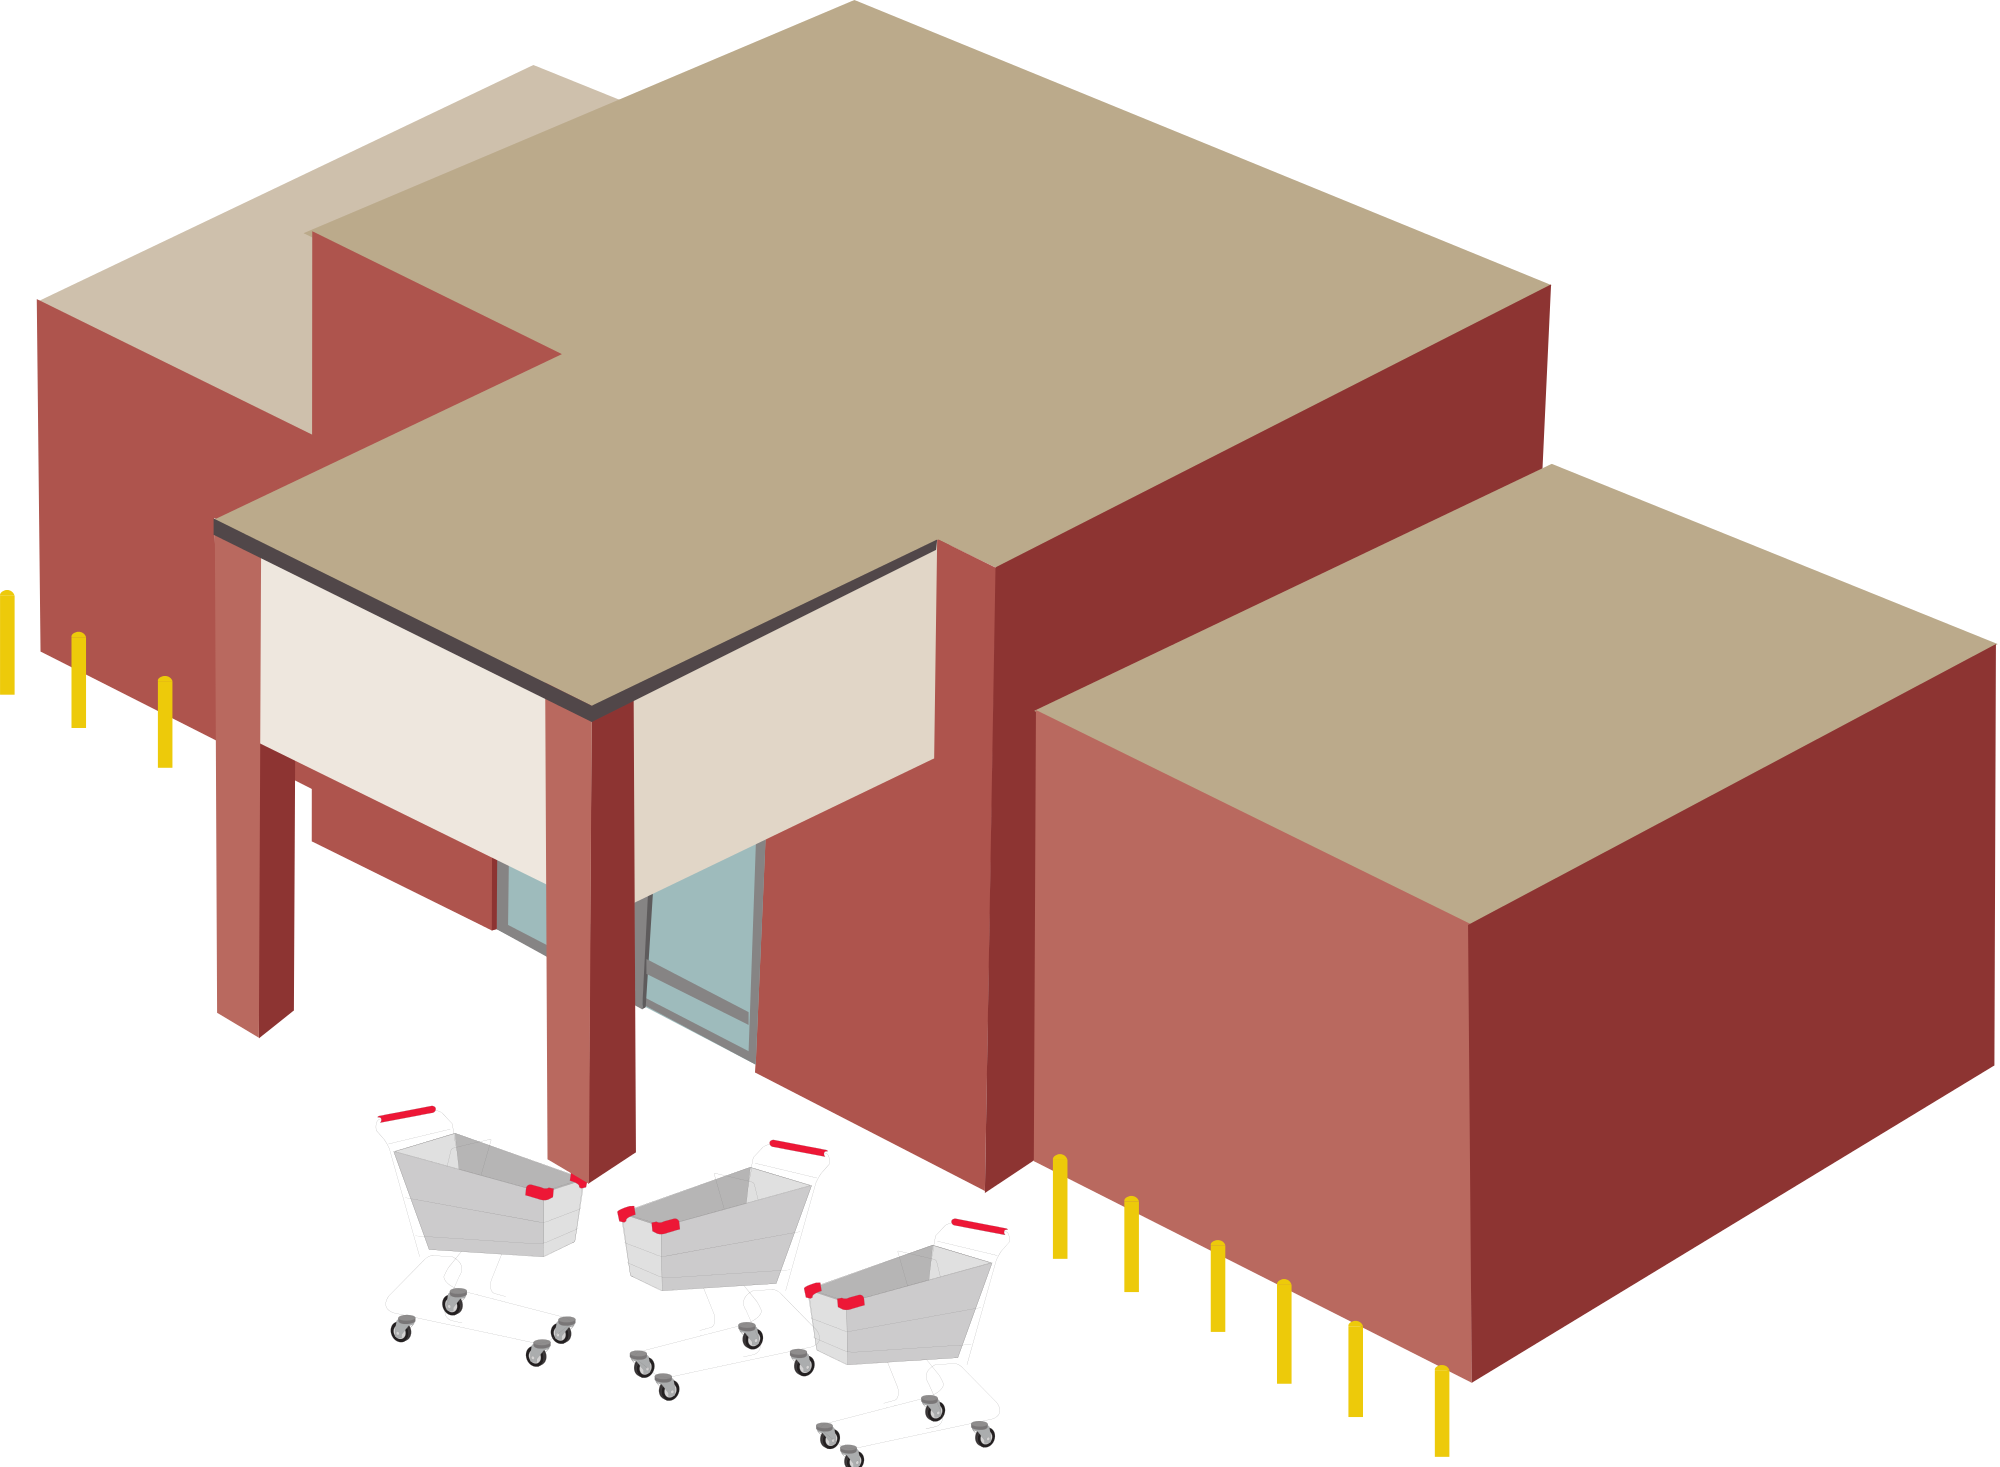 collection of department. Mall clipart clothing store building